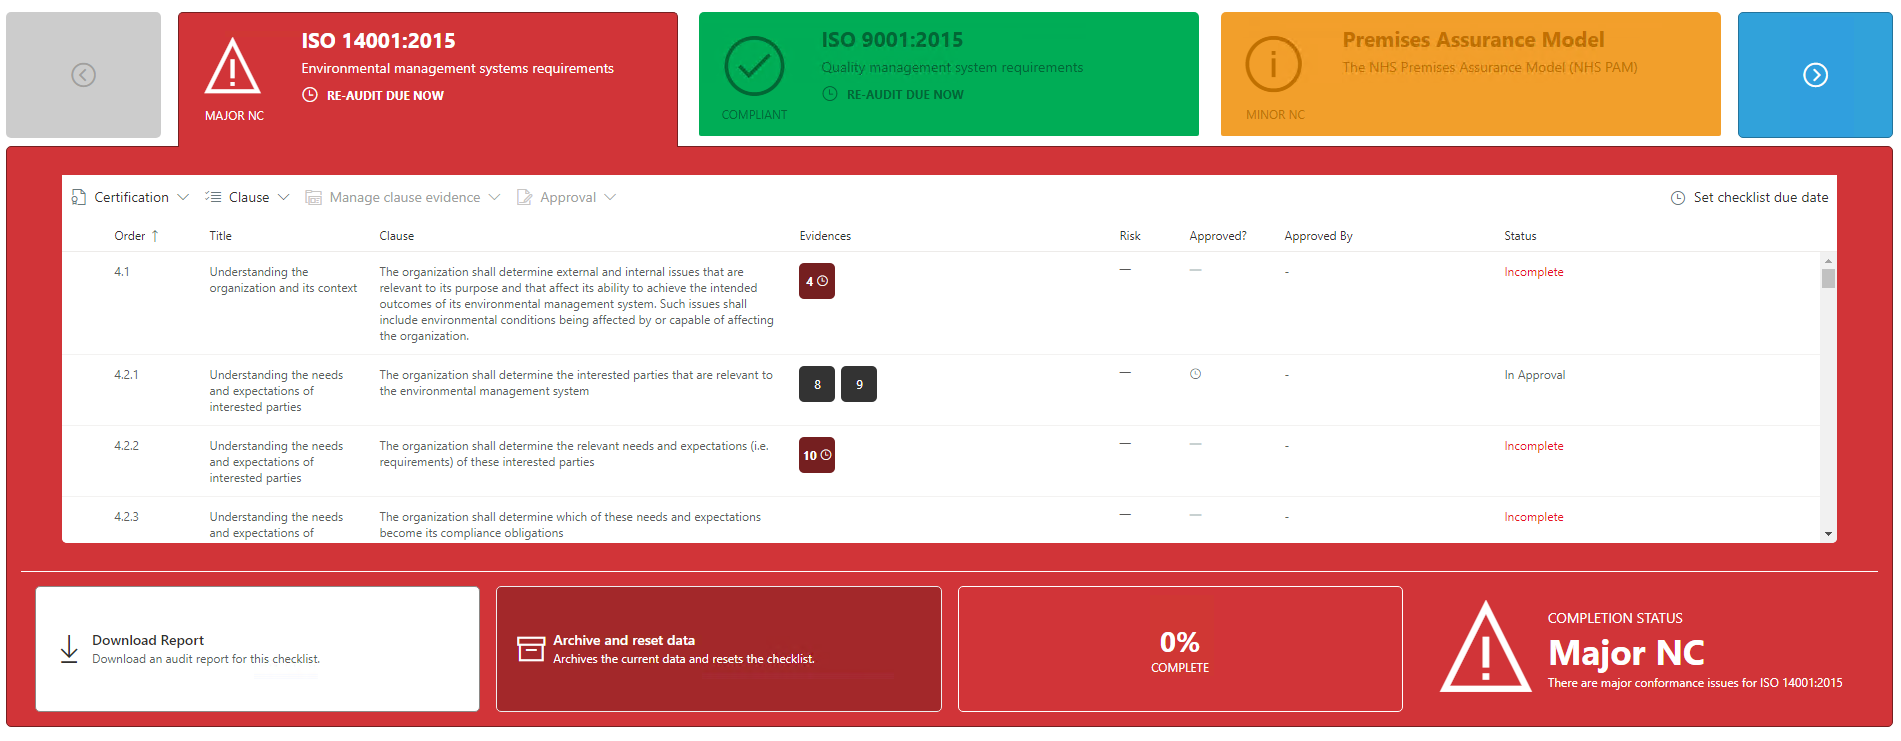 ISO Certified Quality Management System checklist dashboard